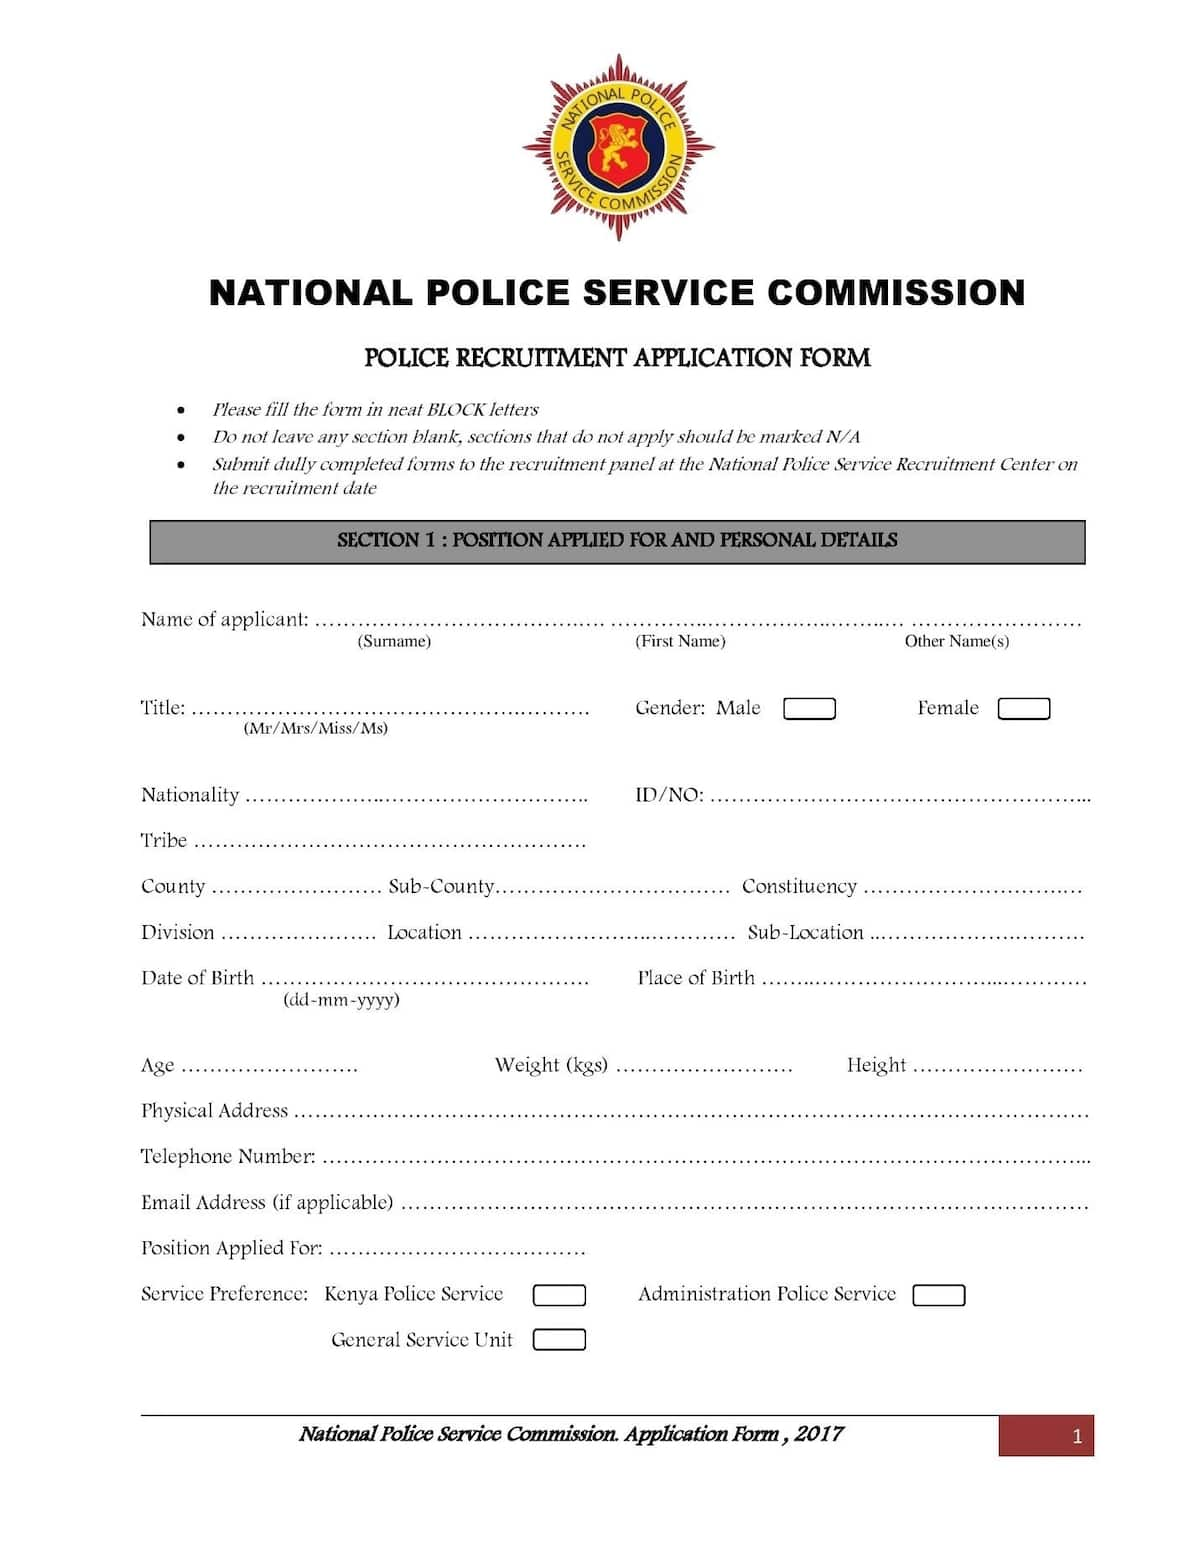 Kenya police application form 2018